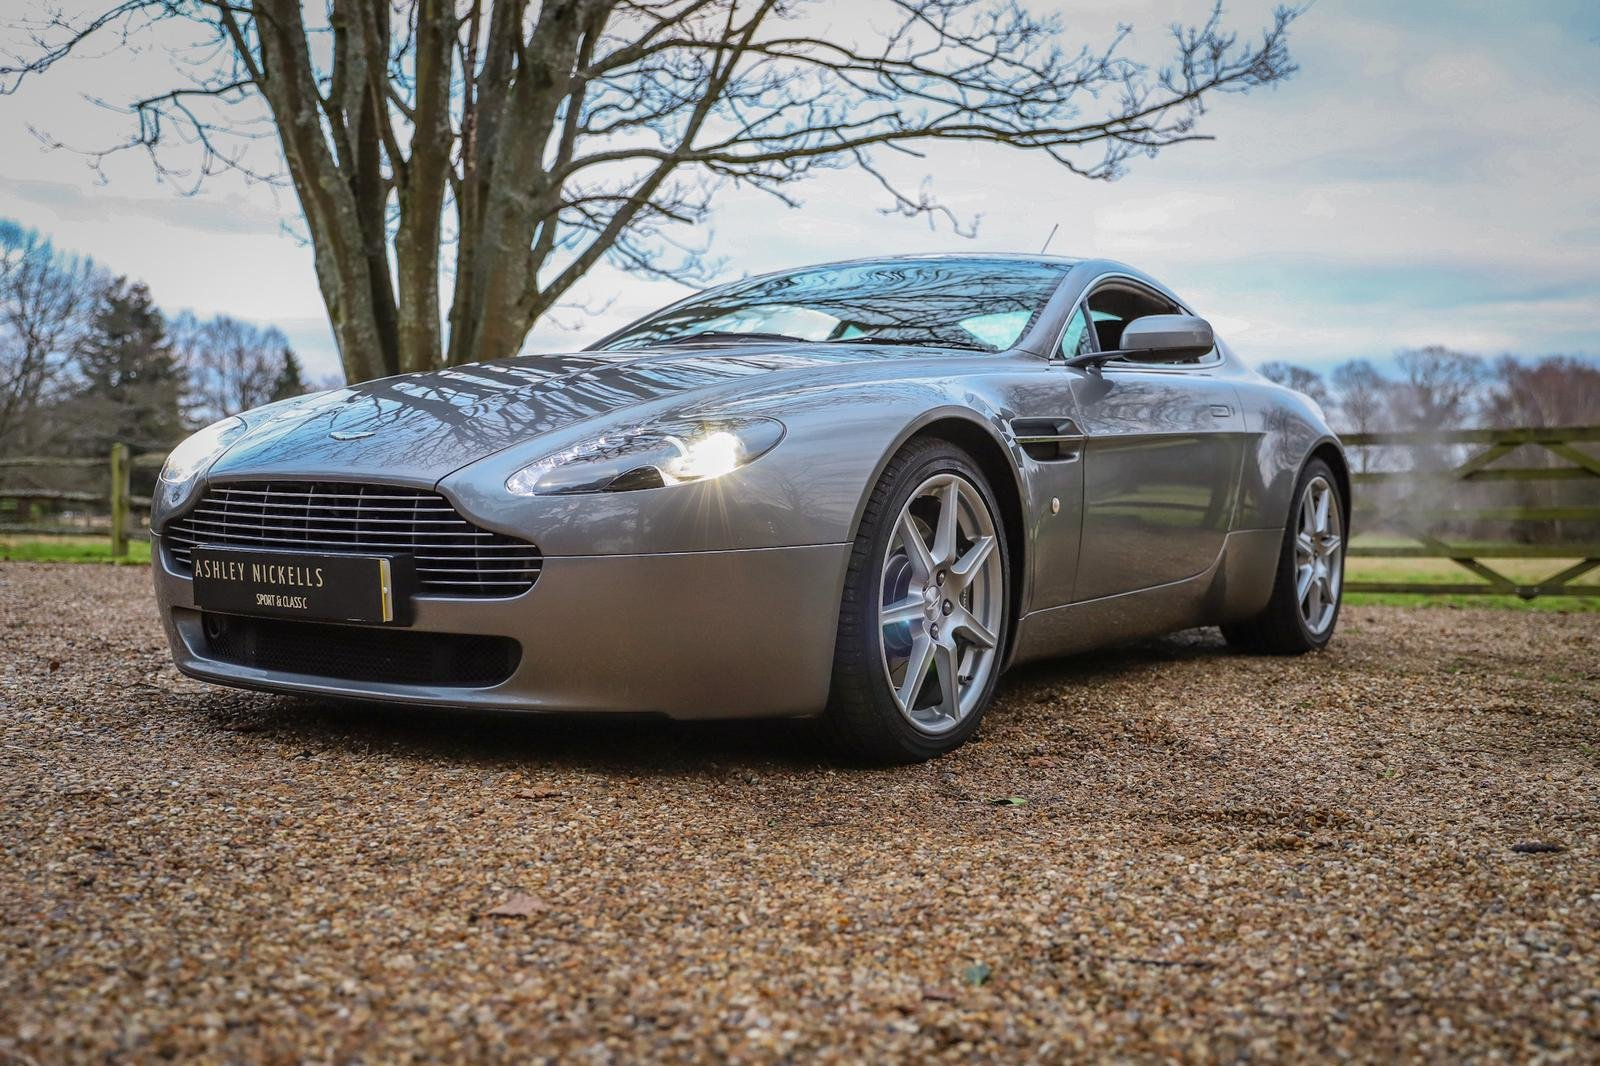 2006 EXCLUSIVE ASTON MARTIN MAIN DEALER HISTORY - IMMACULATE For Sale (picture 1 of 6)